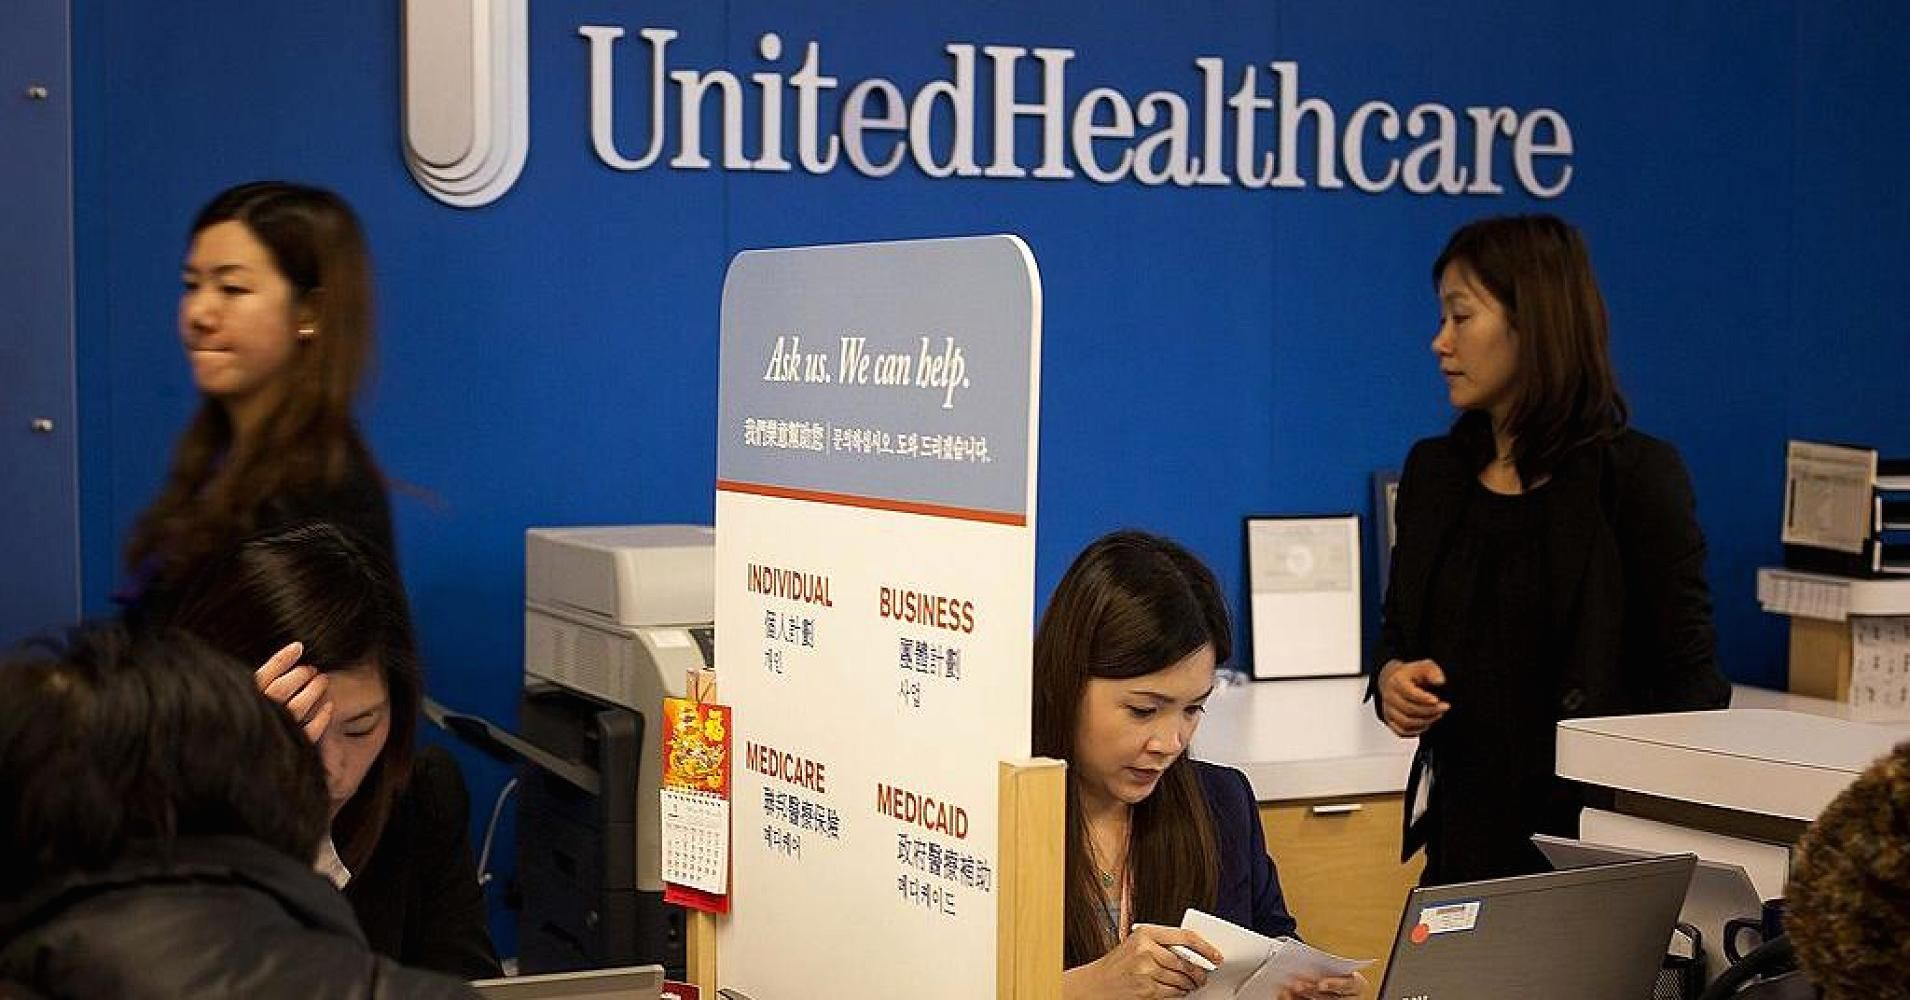 UnitedHealth shares dip on disappointing earnings forecast